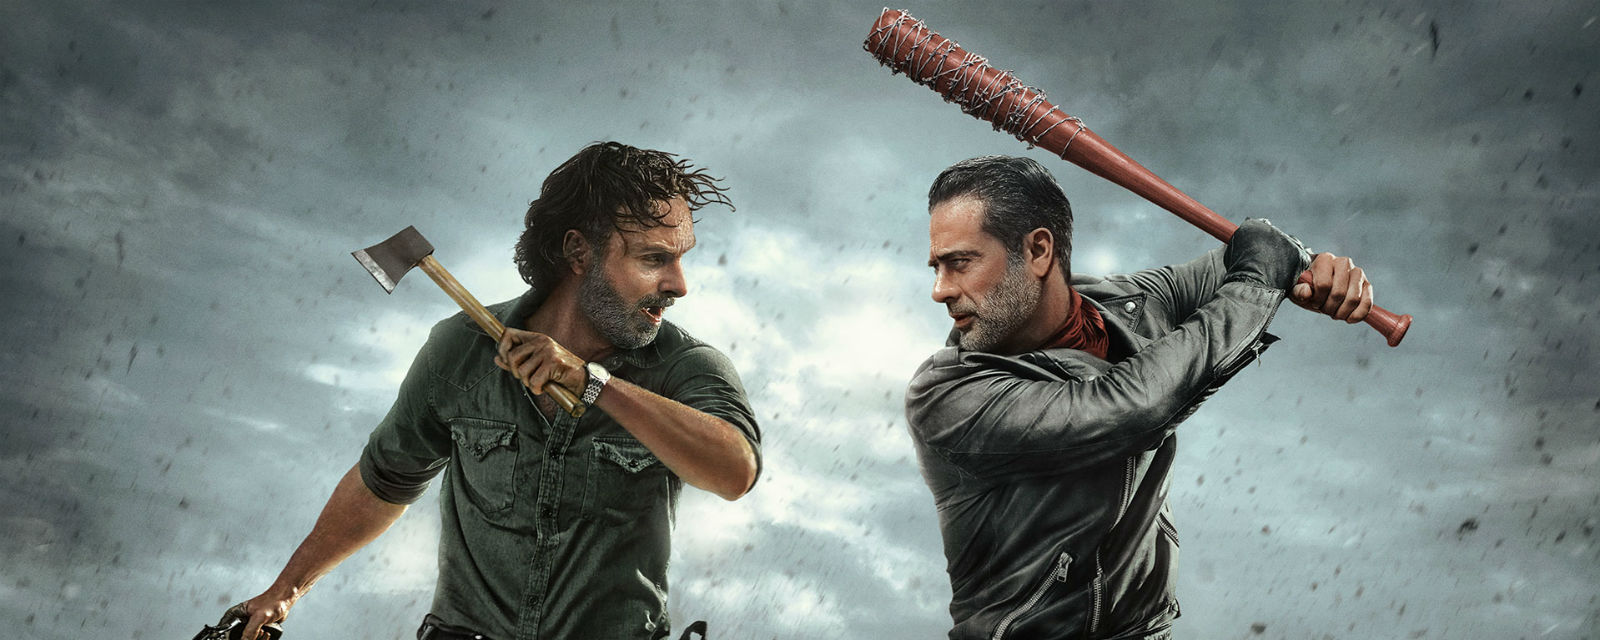 Virou Pauta: Teaser do 9º ano revela conflitos entre os protagonistas em The Walking Dead